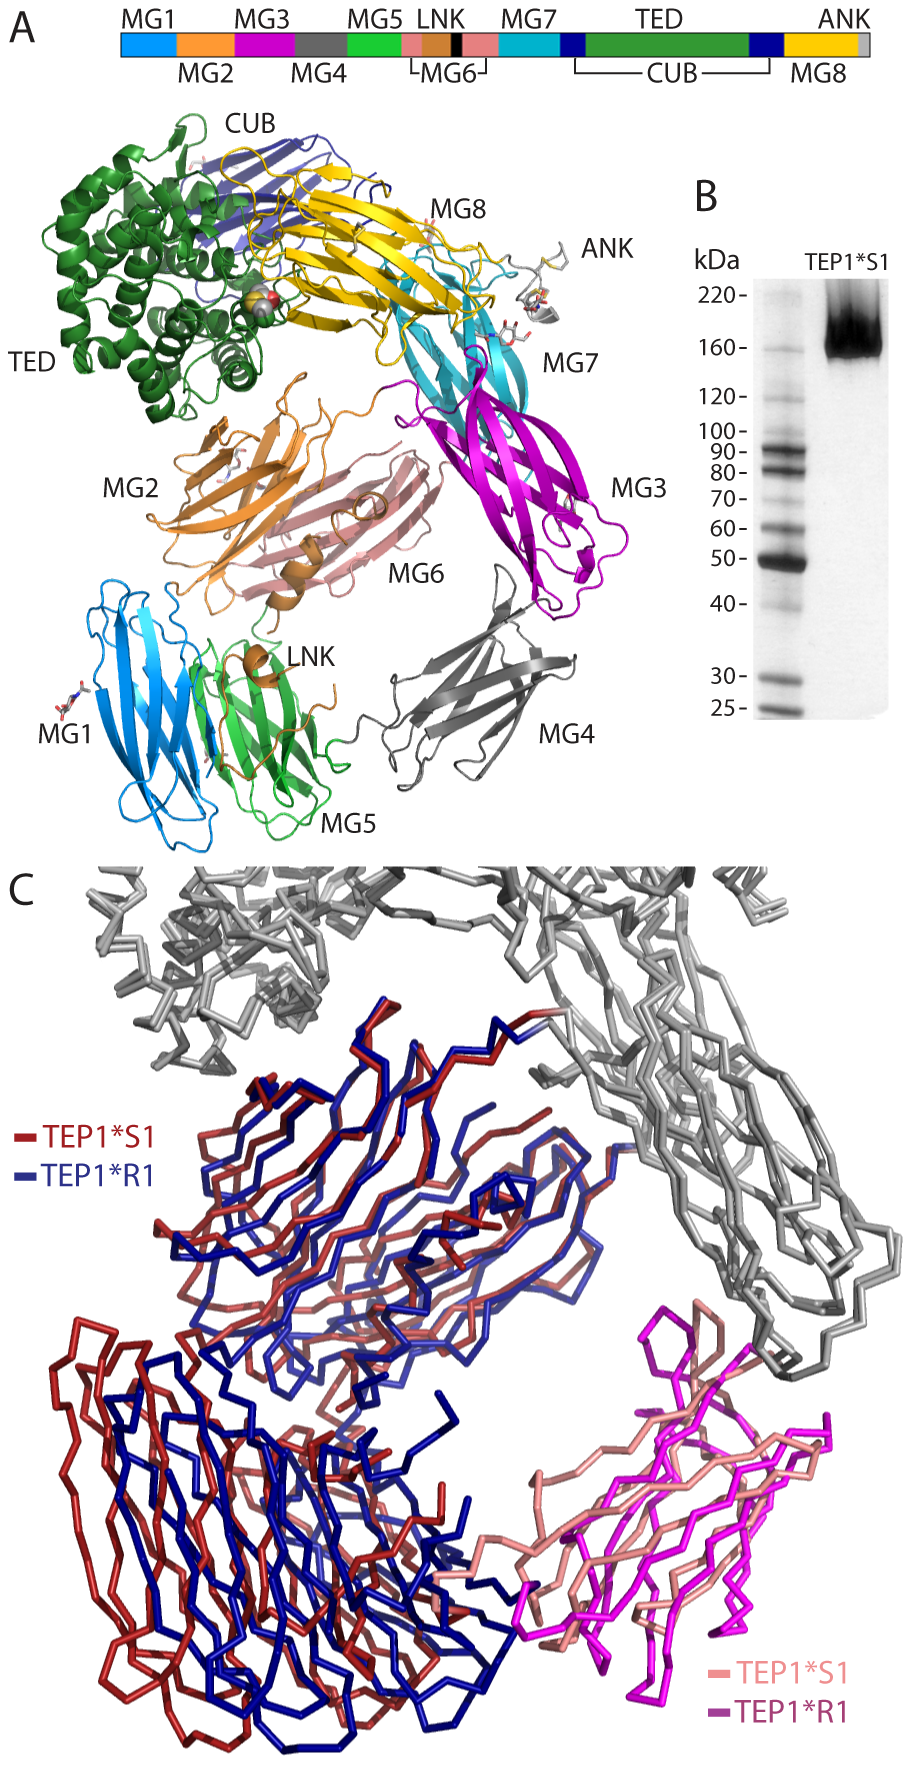 Overview of TEP1*S1 structure.